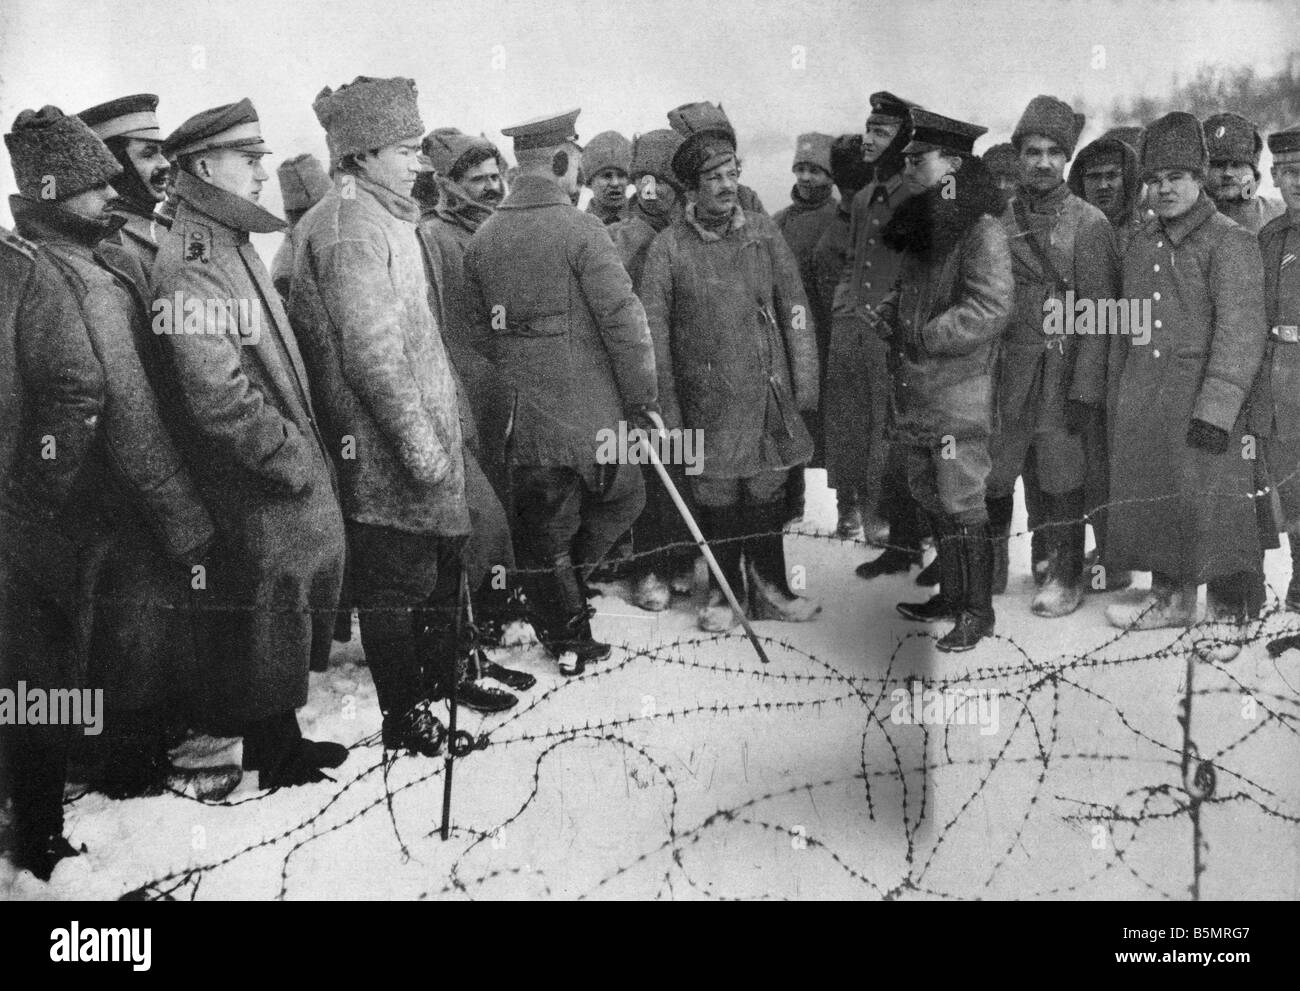 9 1917 12 15 A1 20 Ceasefire December 1917 World War One German Russian ceasefire at Brest Litovsk 15 December 1917 - Stock Image